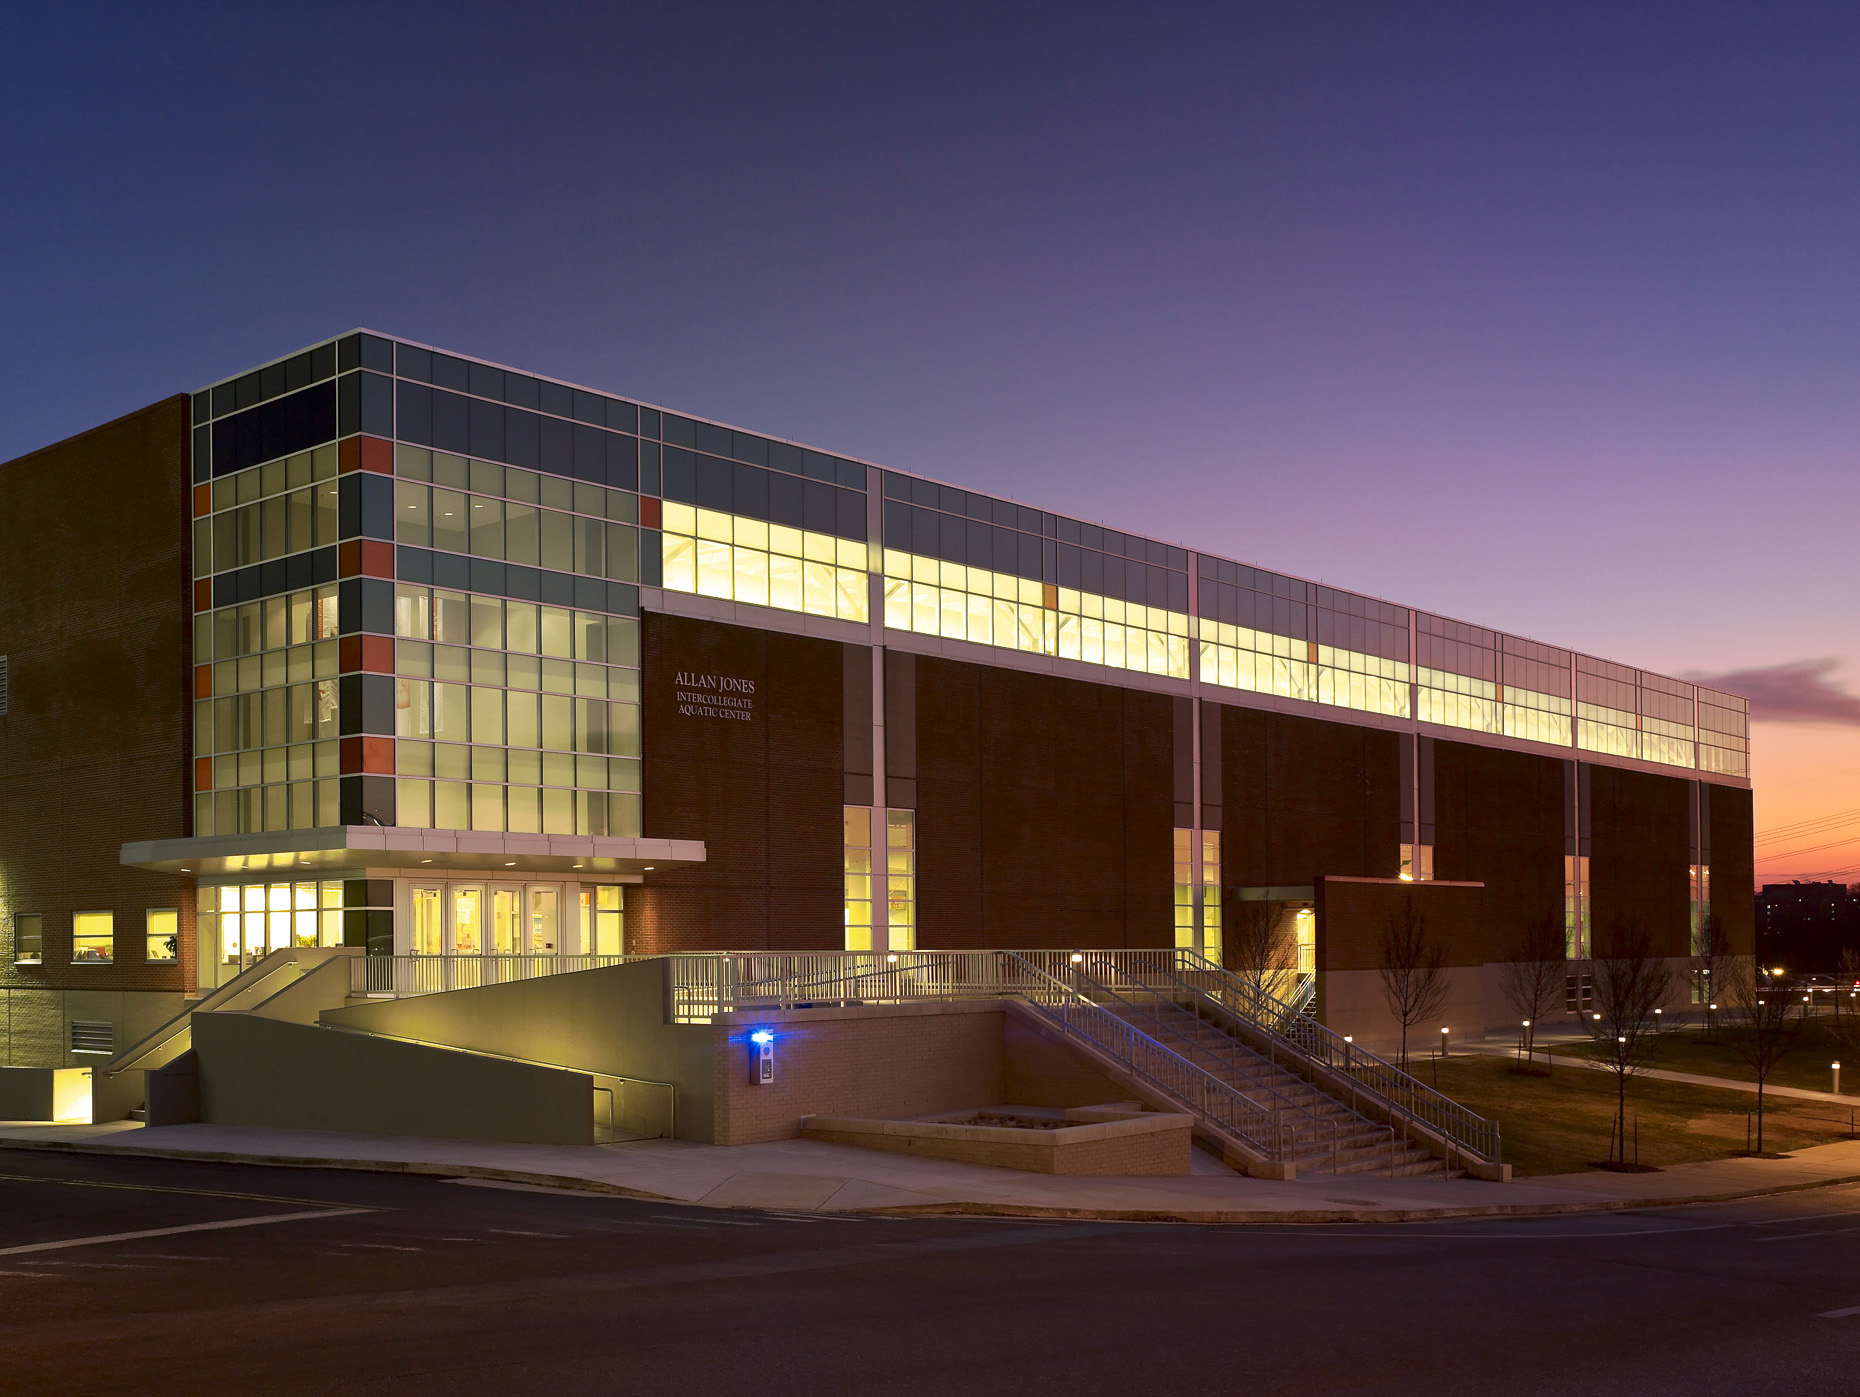 University of Tennessee Allan Jones Intercollegiate Aquatics Center by HNTB photographed by Brad Feinknopf based in COlumbus, Ohio